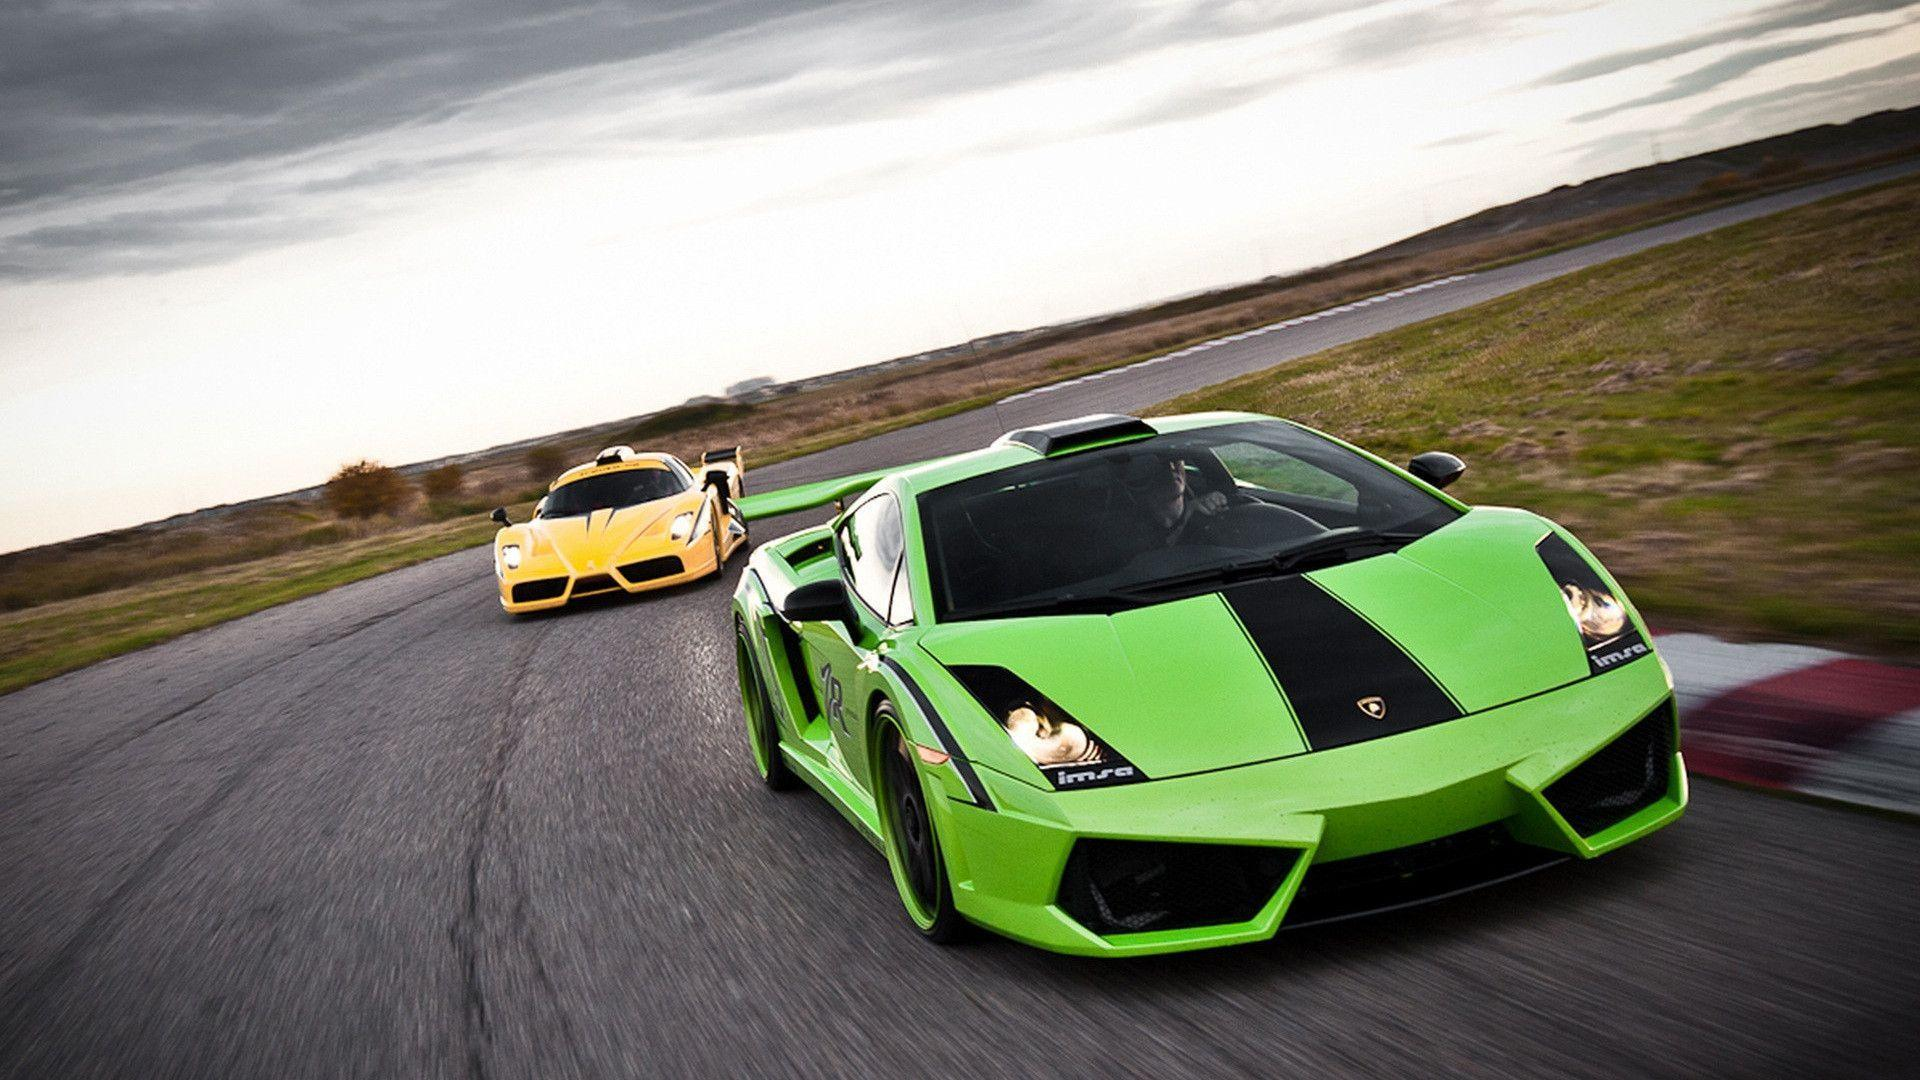 Lamborghini Wallpapers 1920x1080 Wallpaper Cave